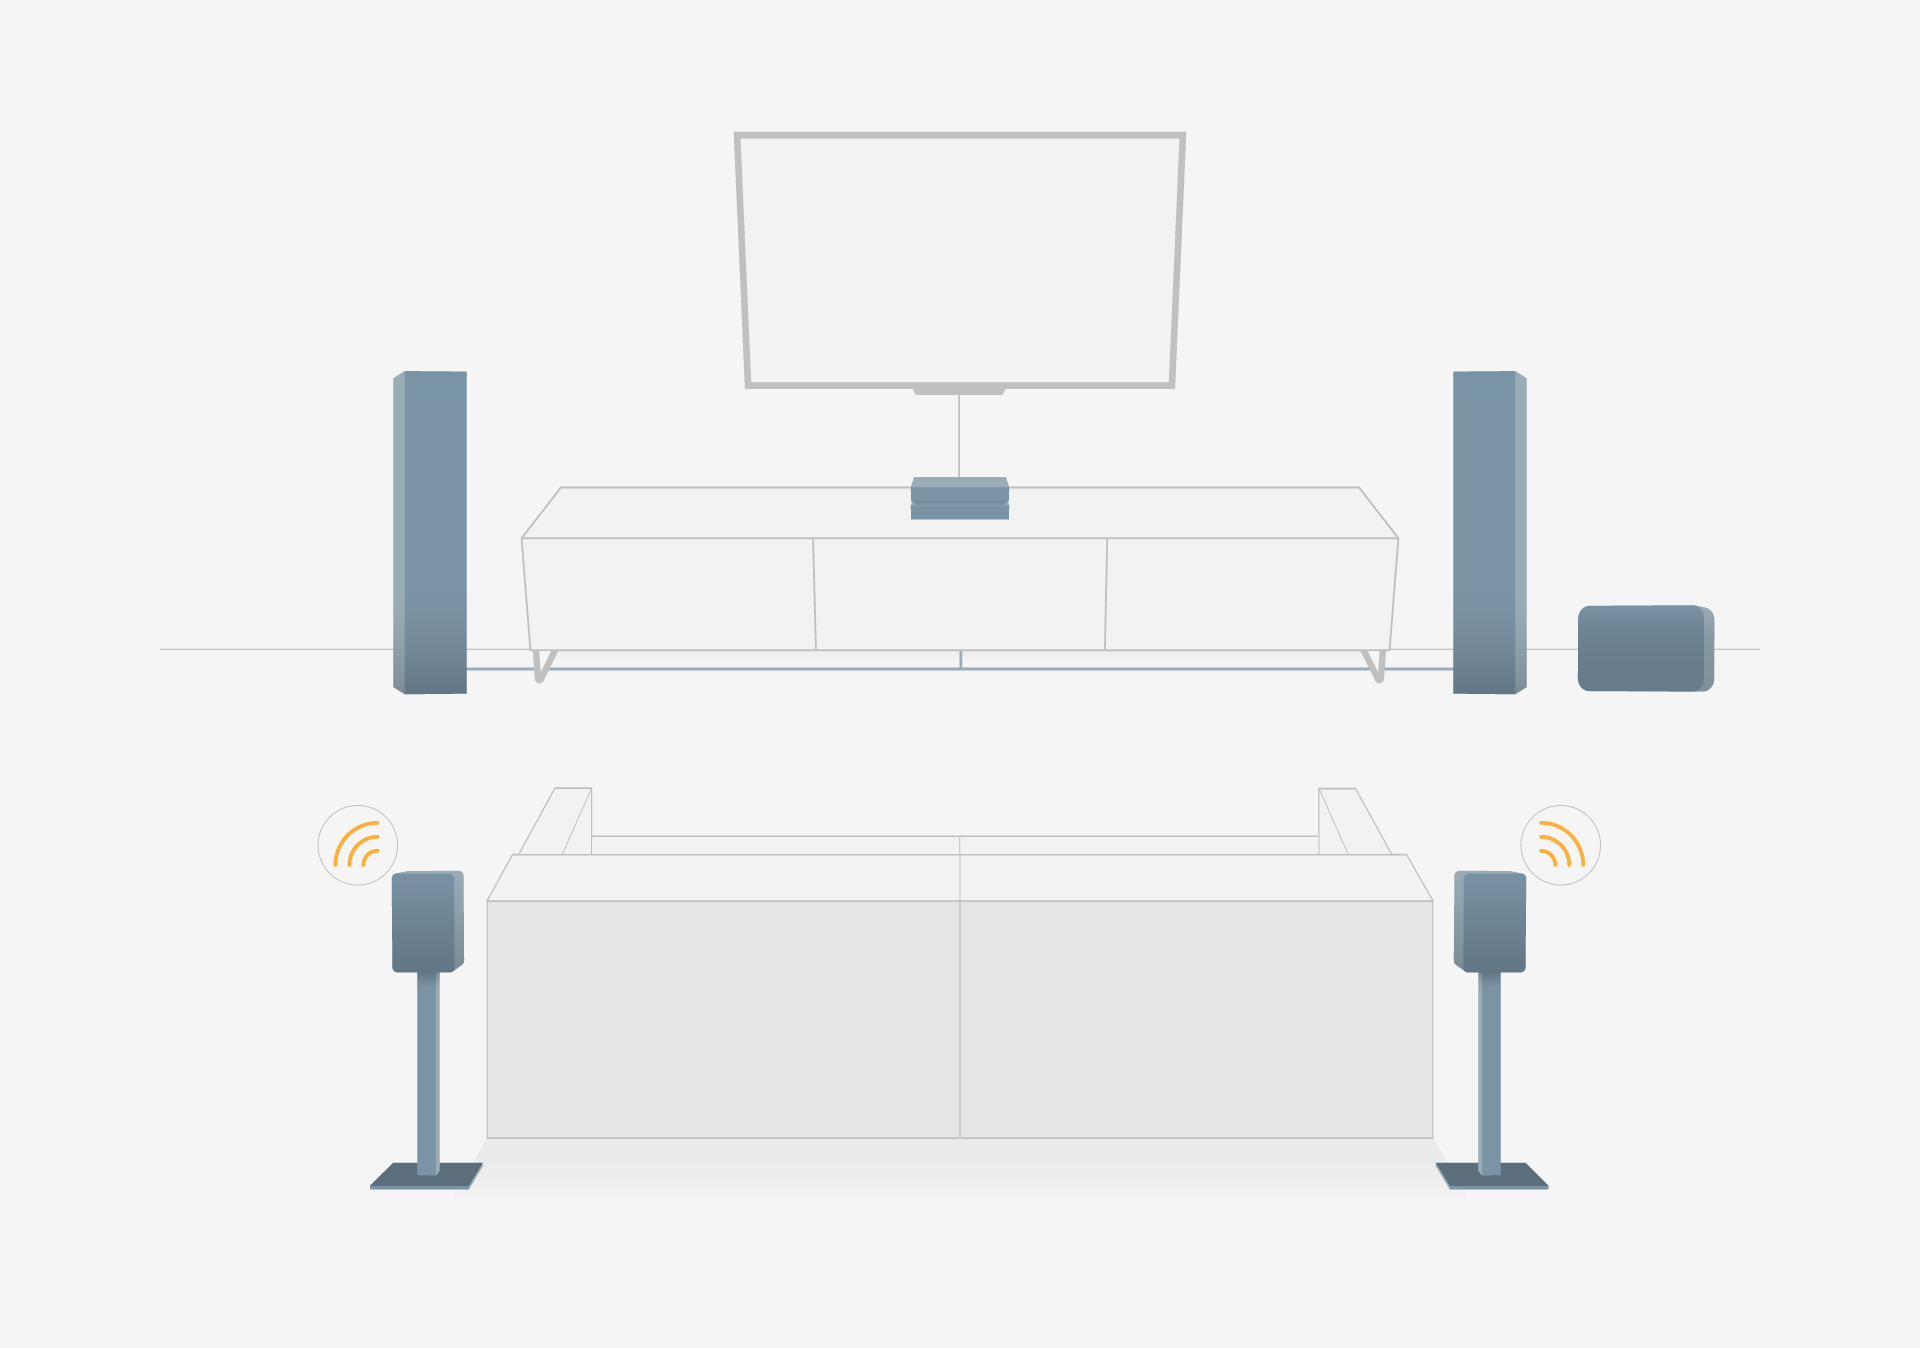 Diagram of a home theater with the POWERNODE and PULSE FLEX speakers